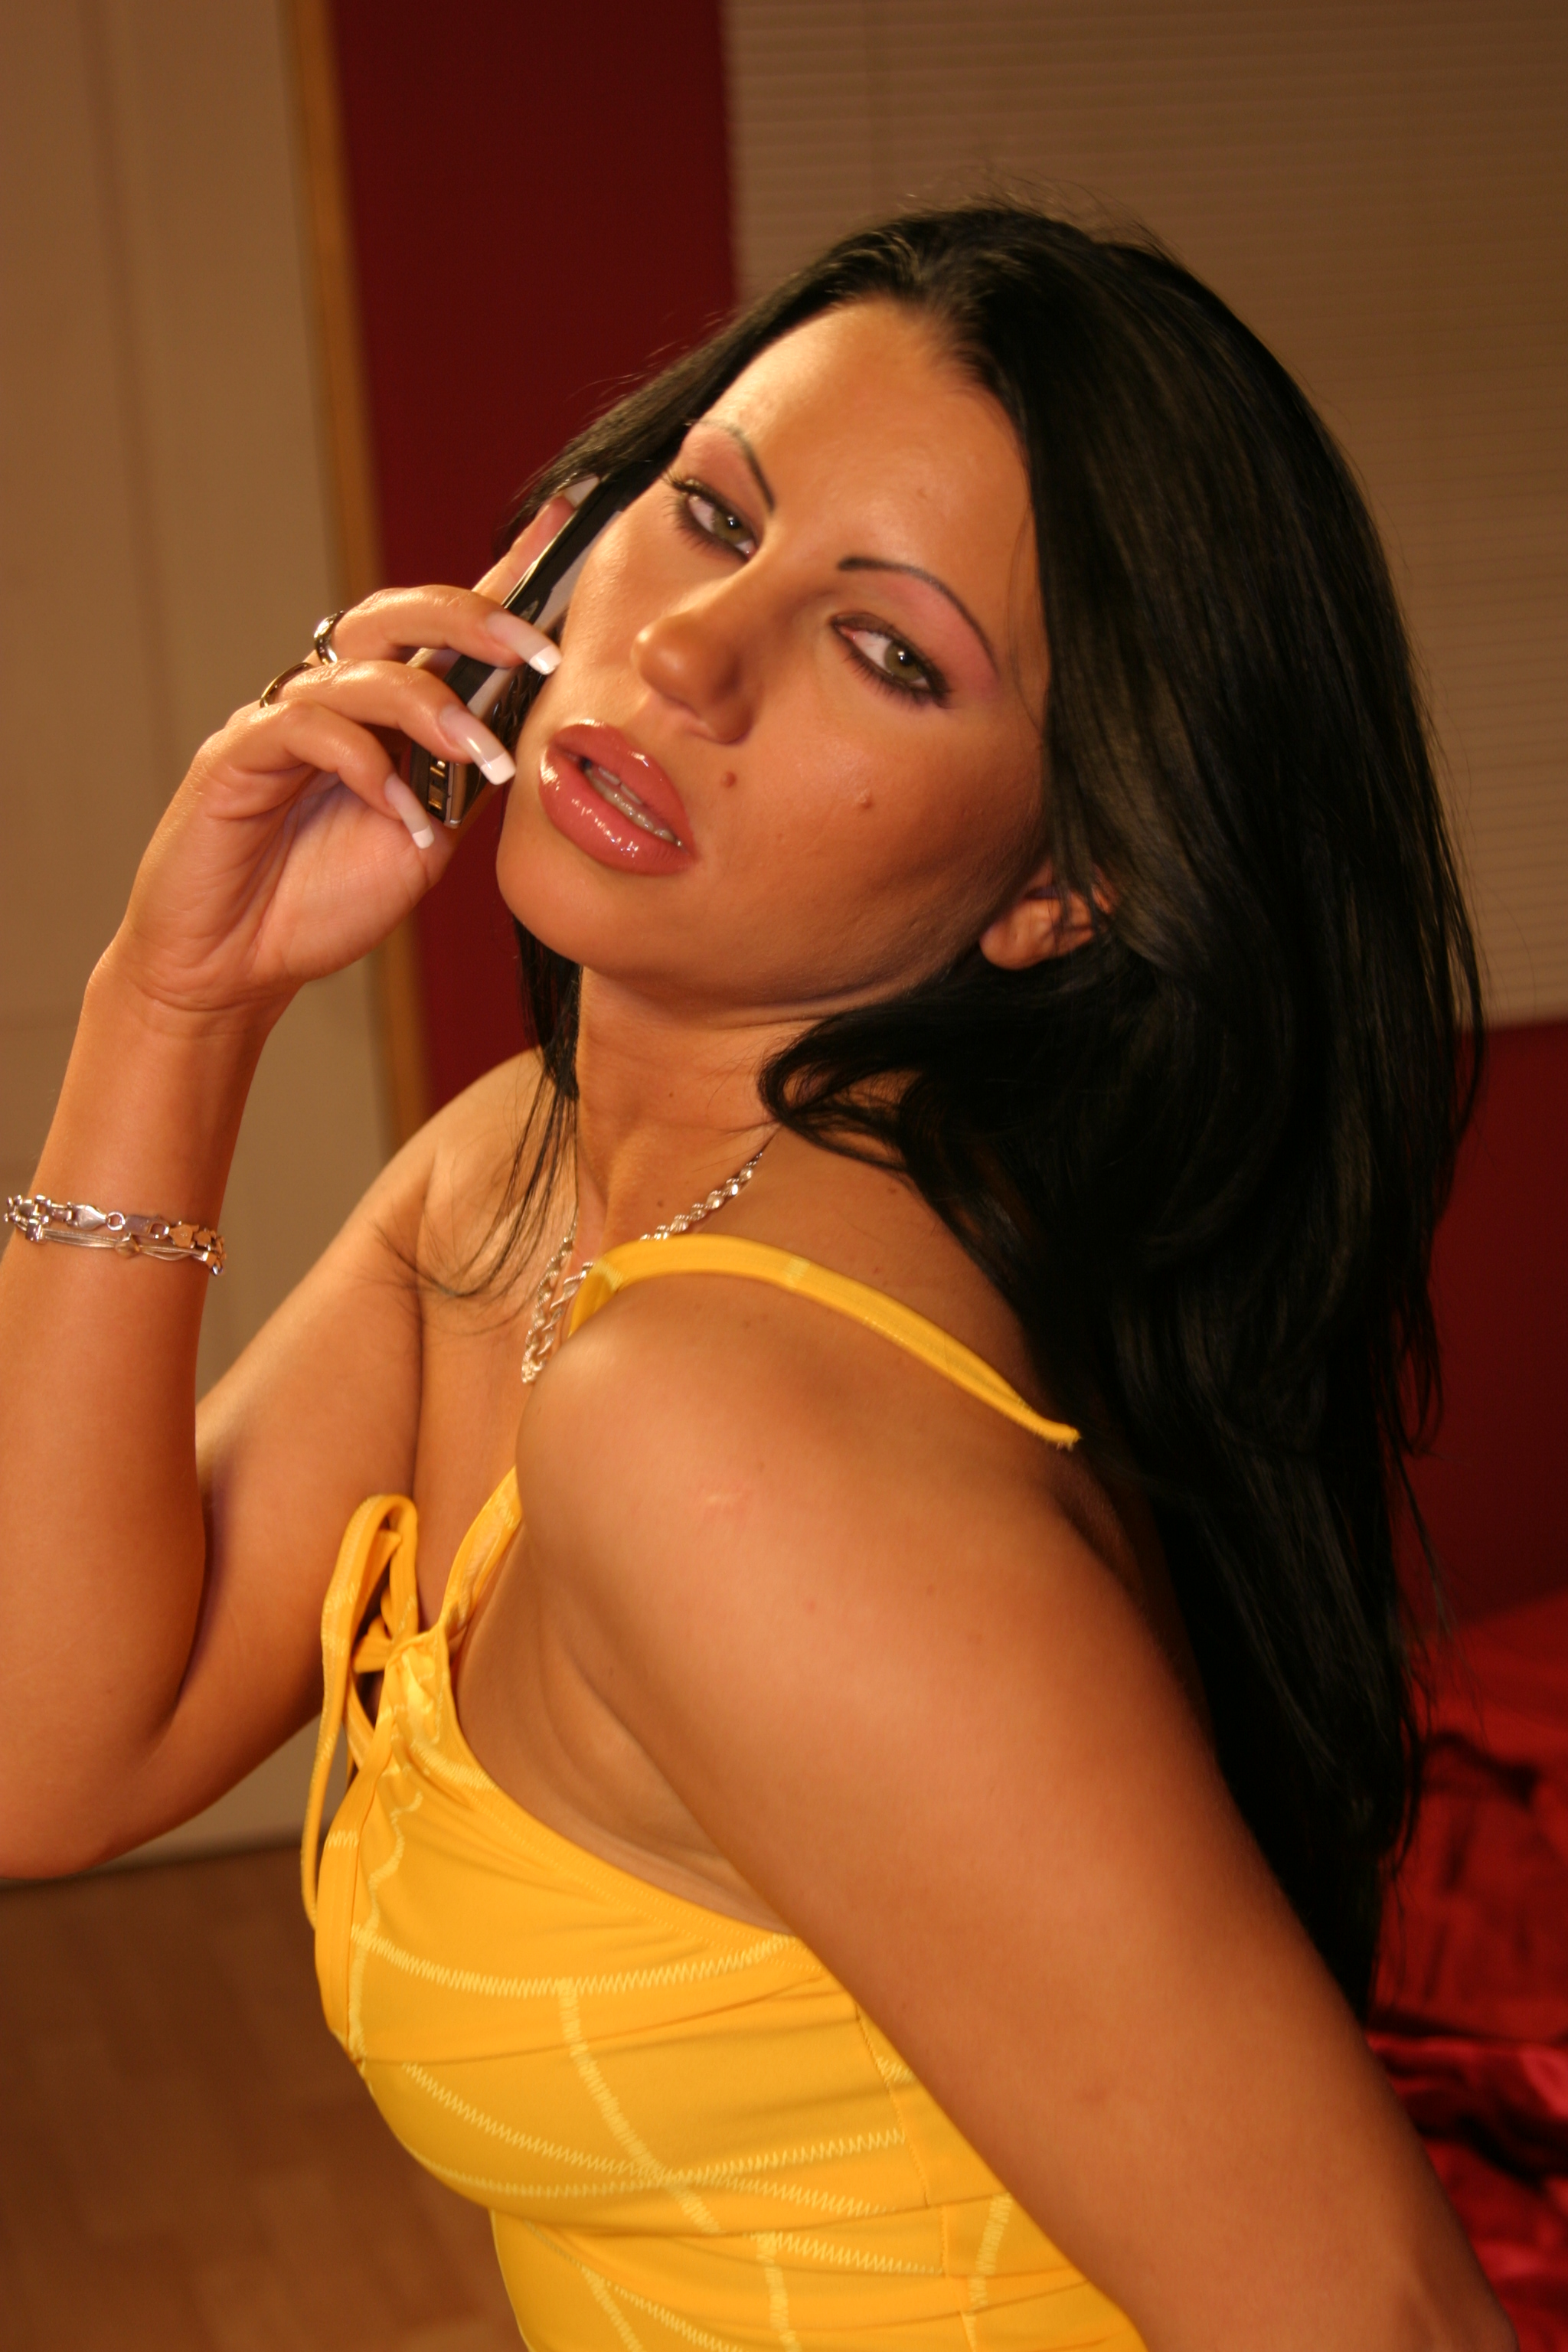 Telefondating mit dem Girl next door